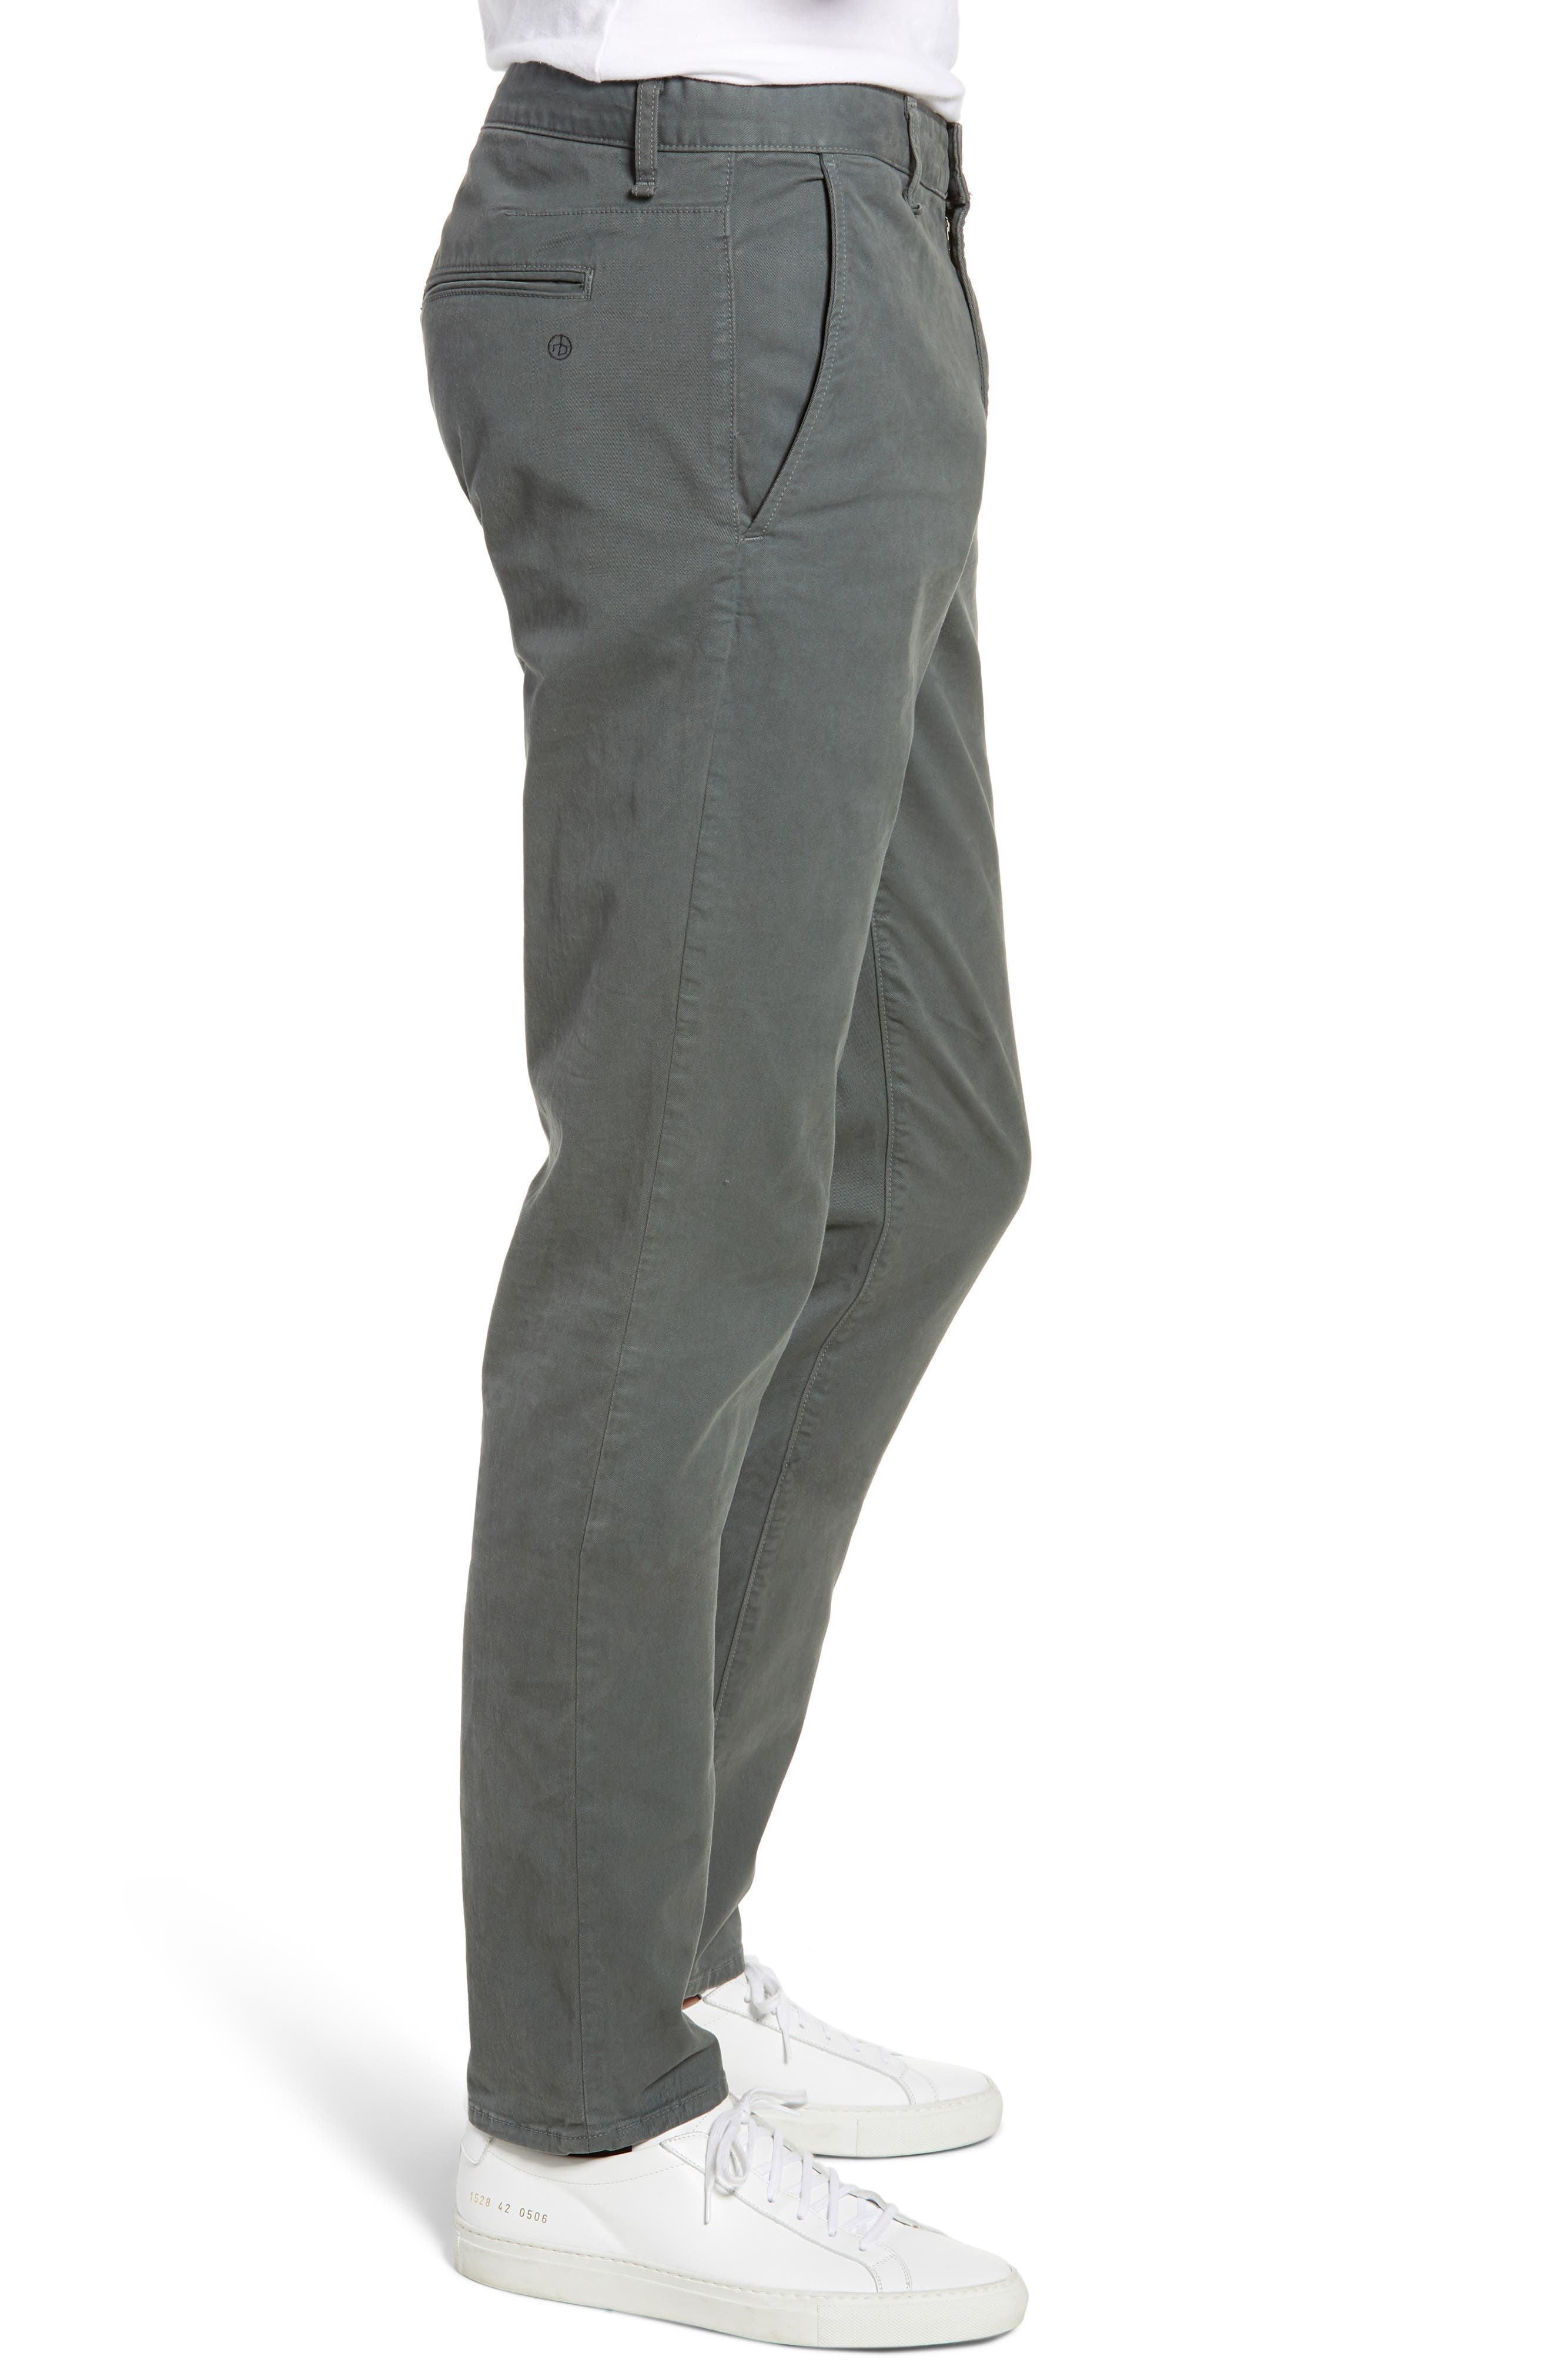 Fit 2 Slim Fit Chinos,                             Alternate thumbnail 3, color,                             TORREY PINE